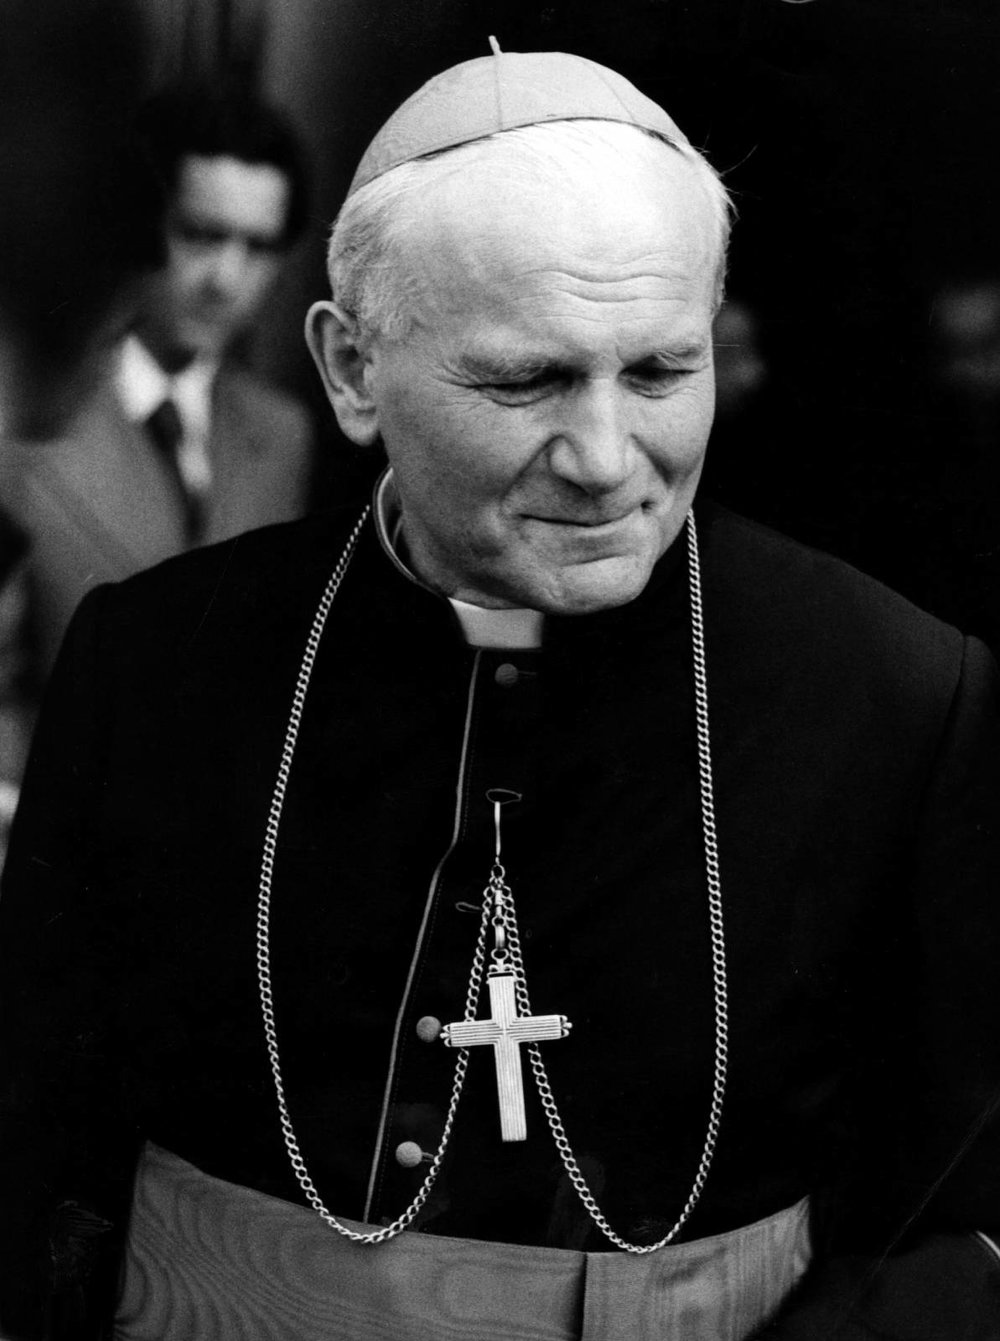 Copy of John Paul II (1920-2005)